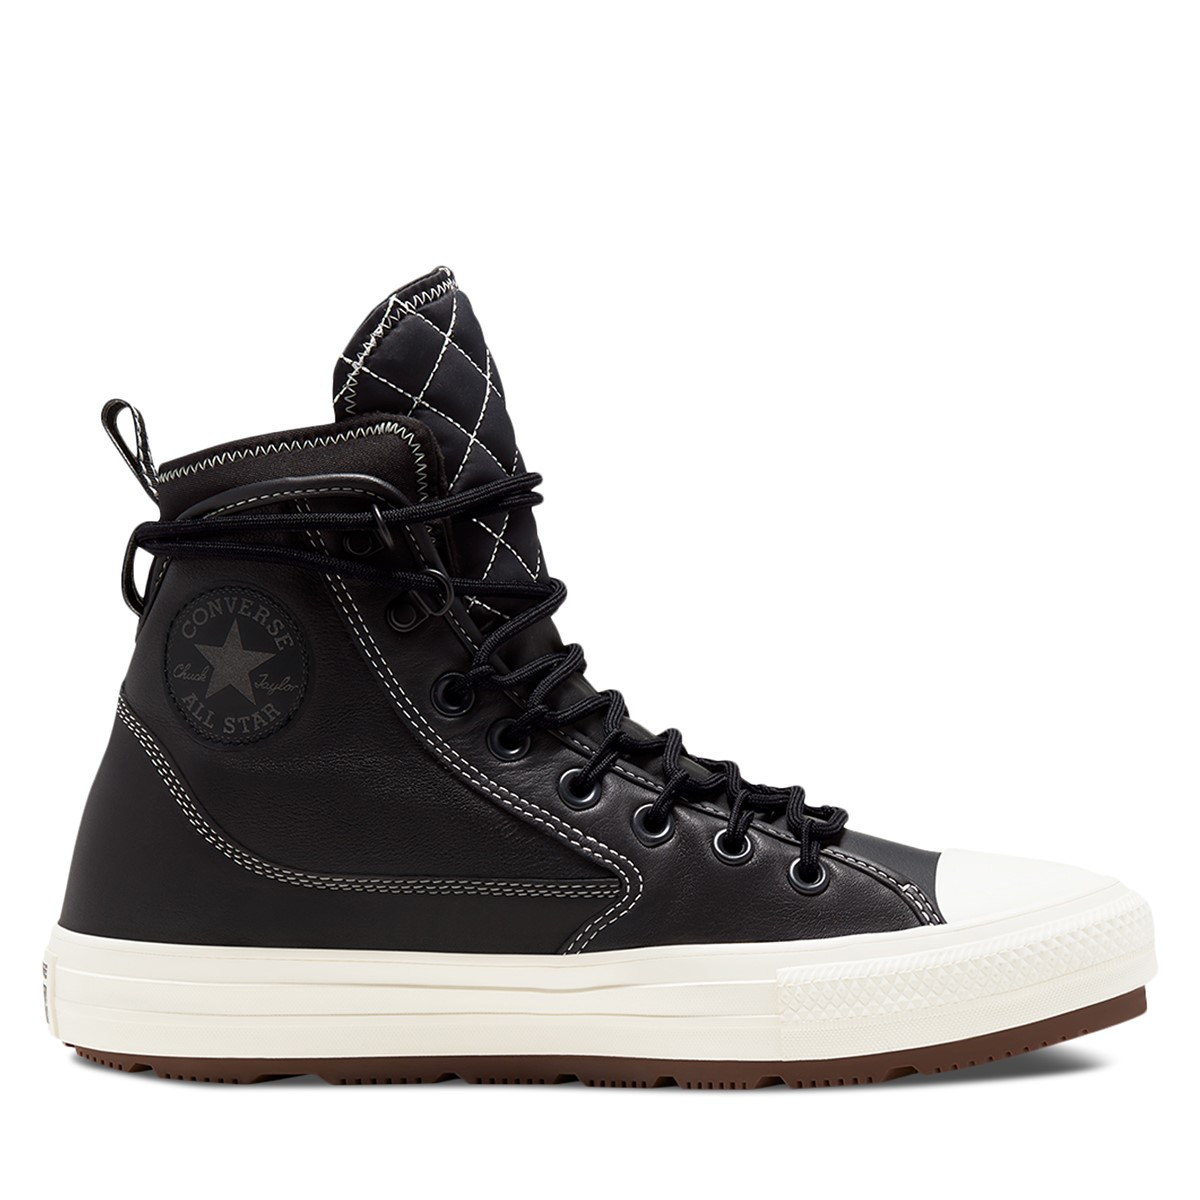 Men's Utility All Terrain Chuck Taylor All Star Boots in Black/White